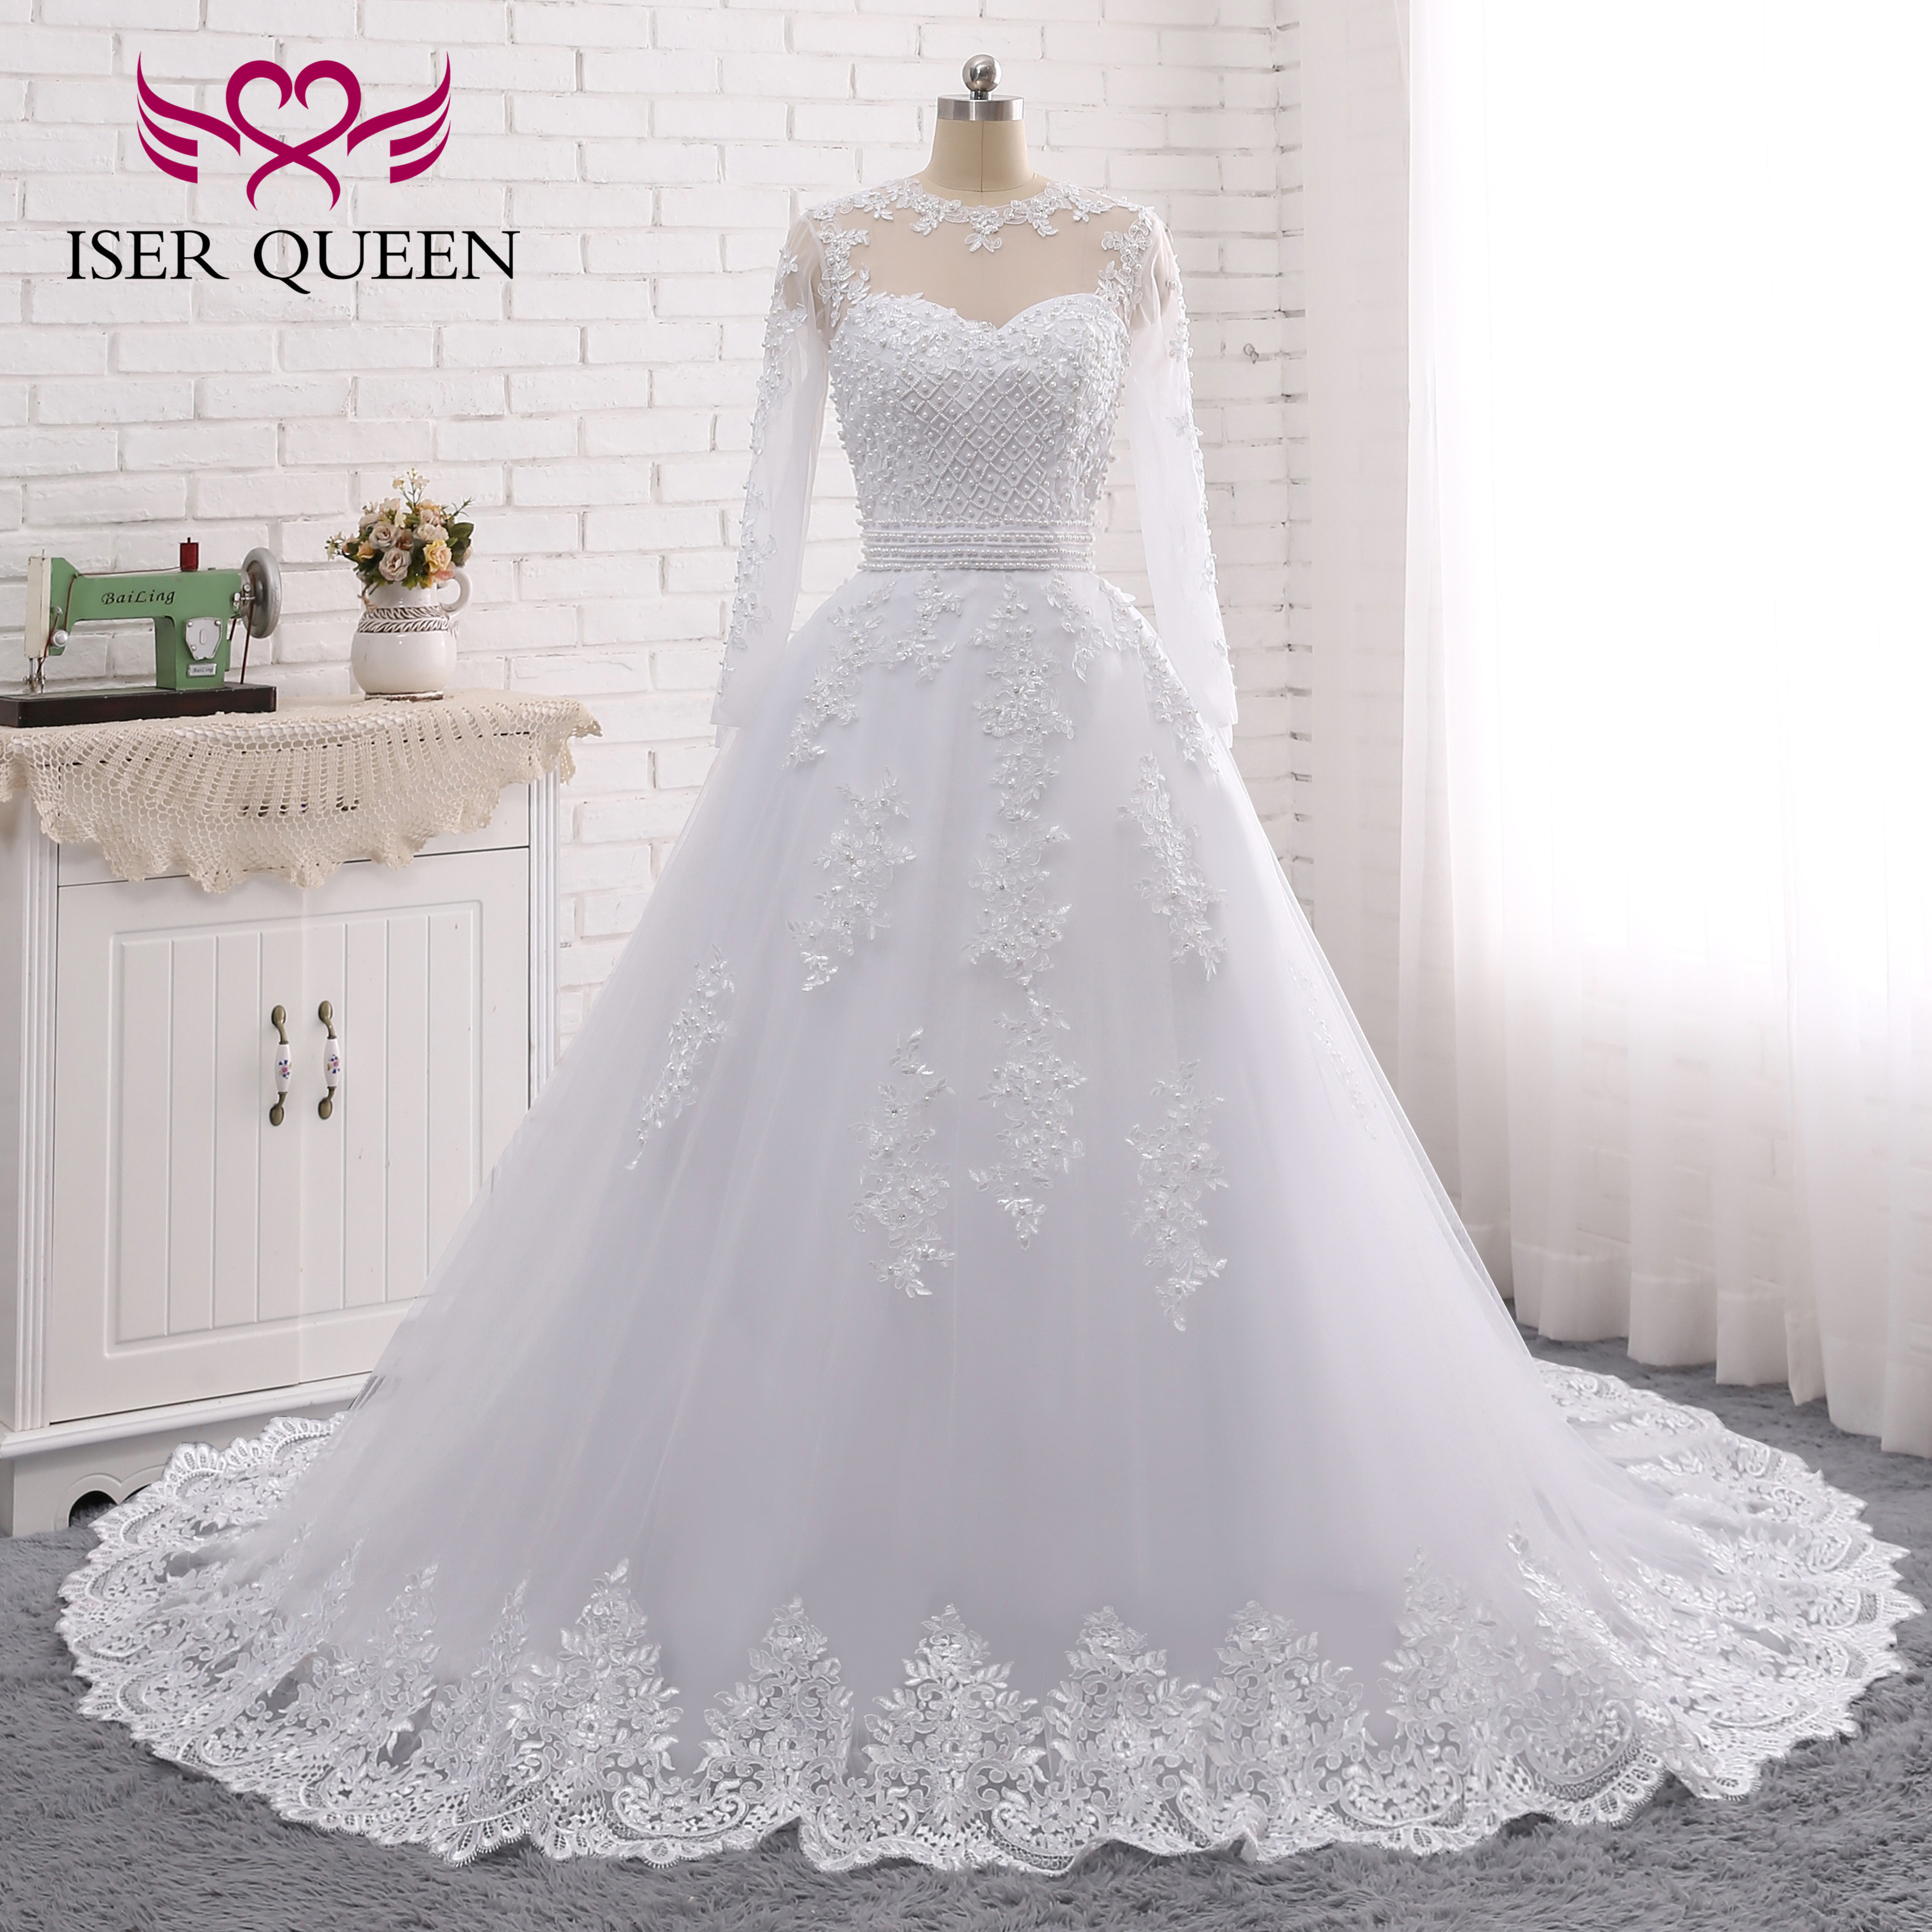 O-neck Tulle Long Sleeves Appliques Embroidered Lace on Net Sashes Pearls Detachable Wedding Dresses Bow vestido de novia W0278